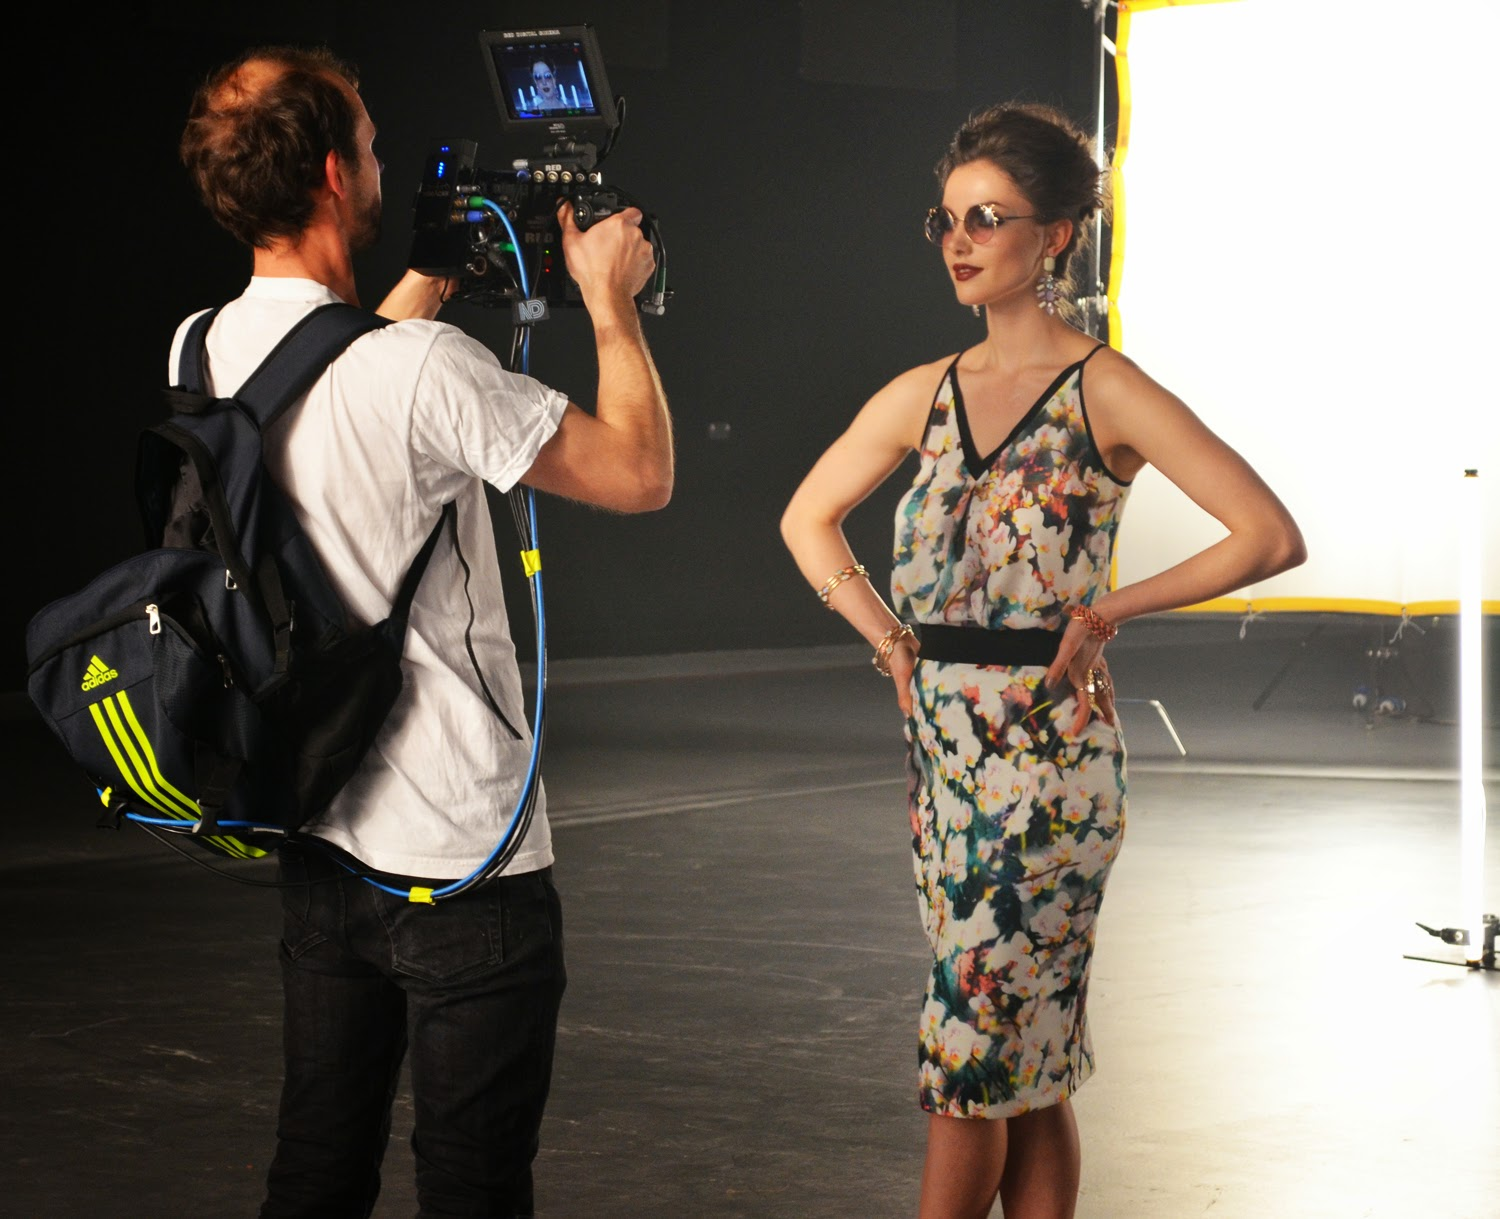 Manchester Arndale Video Shoot - Rock On Holly